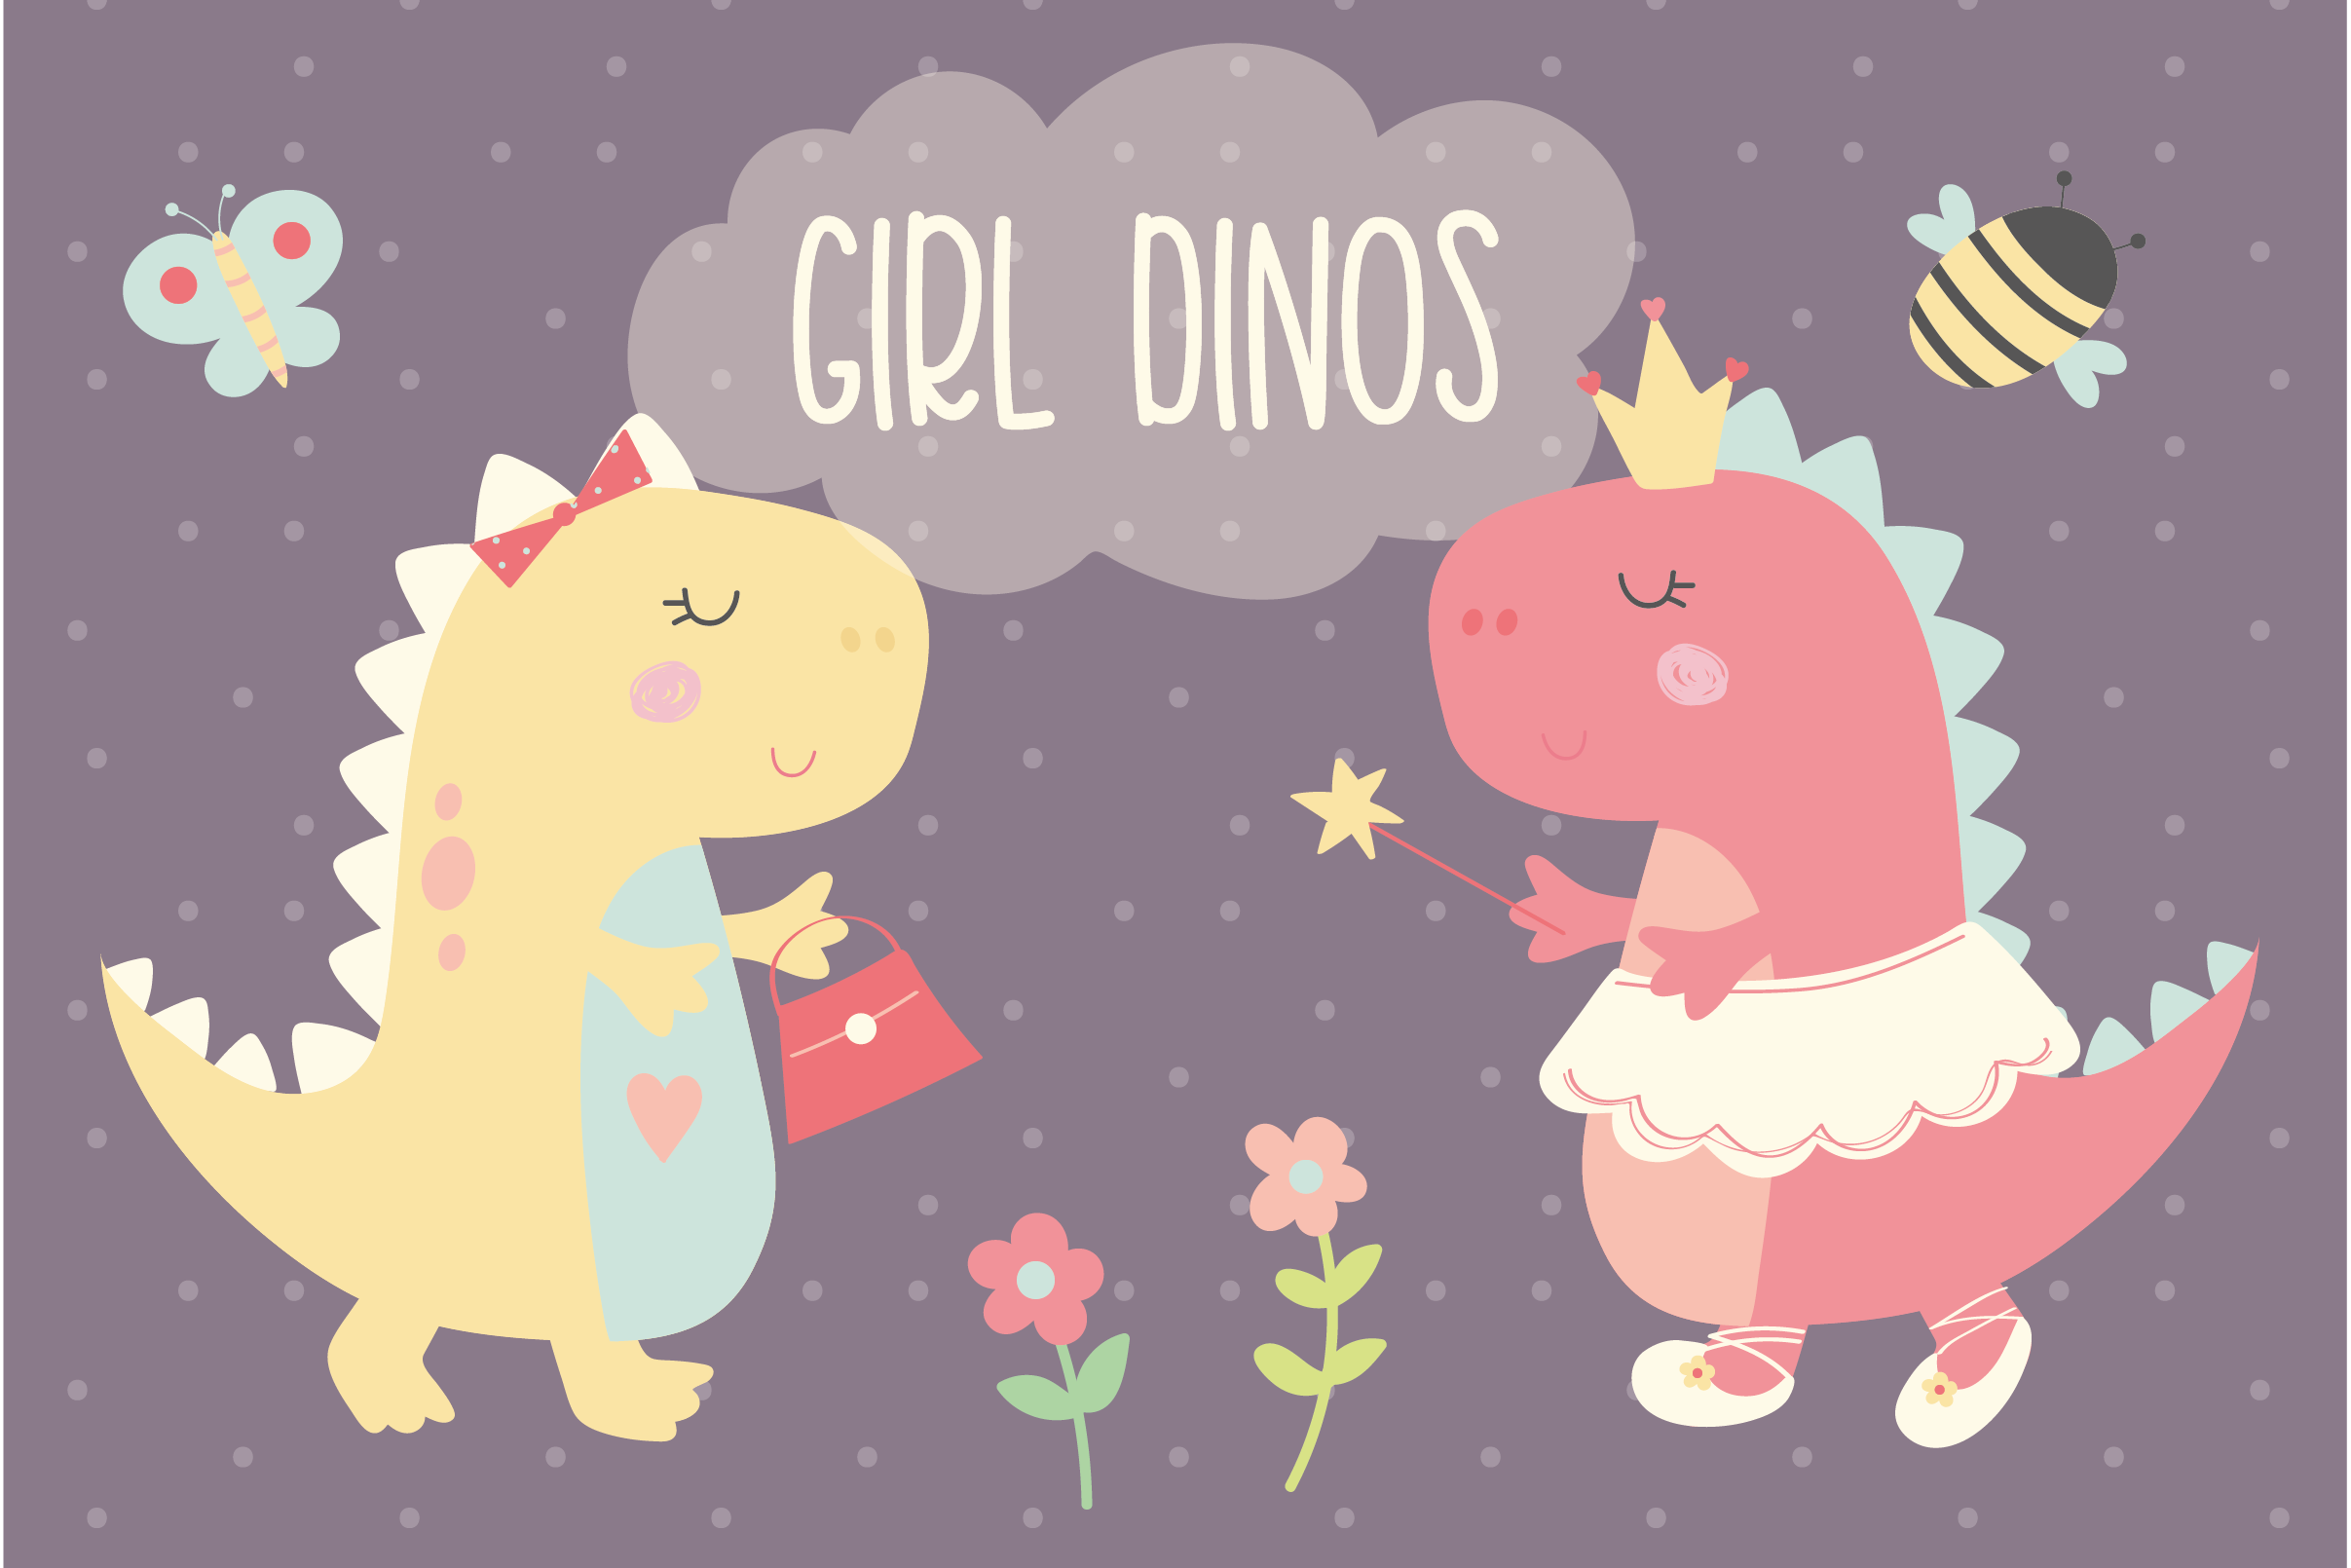 Download Free Girl Dinos Graphic By Poppymoondesign Creative Fabrica for Cricut Explore, Silhouette and other cutting machines.